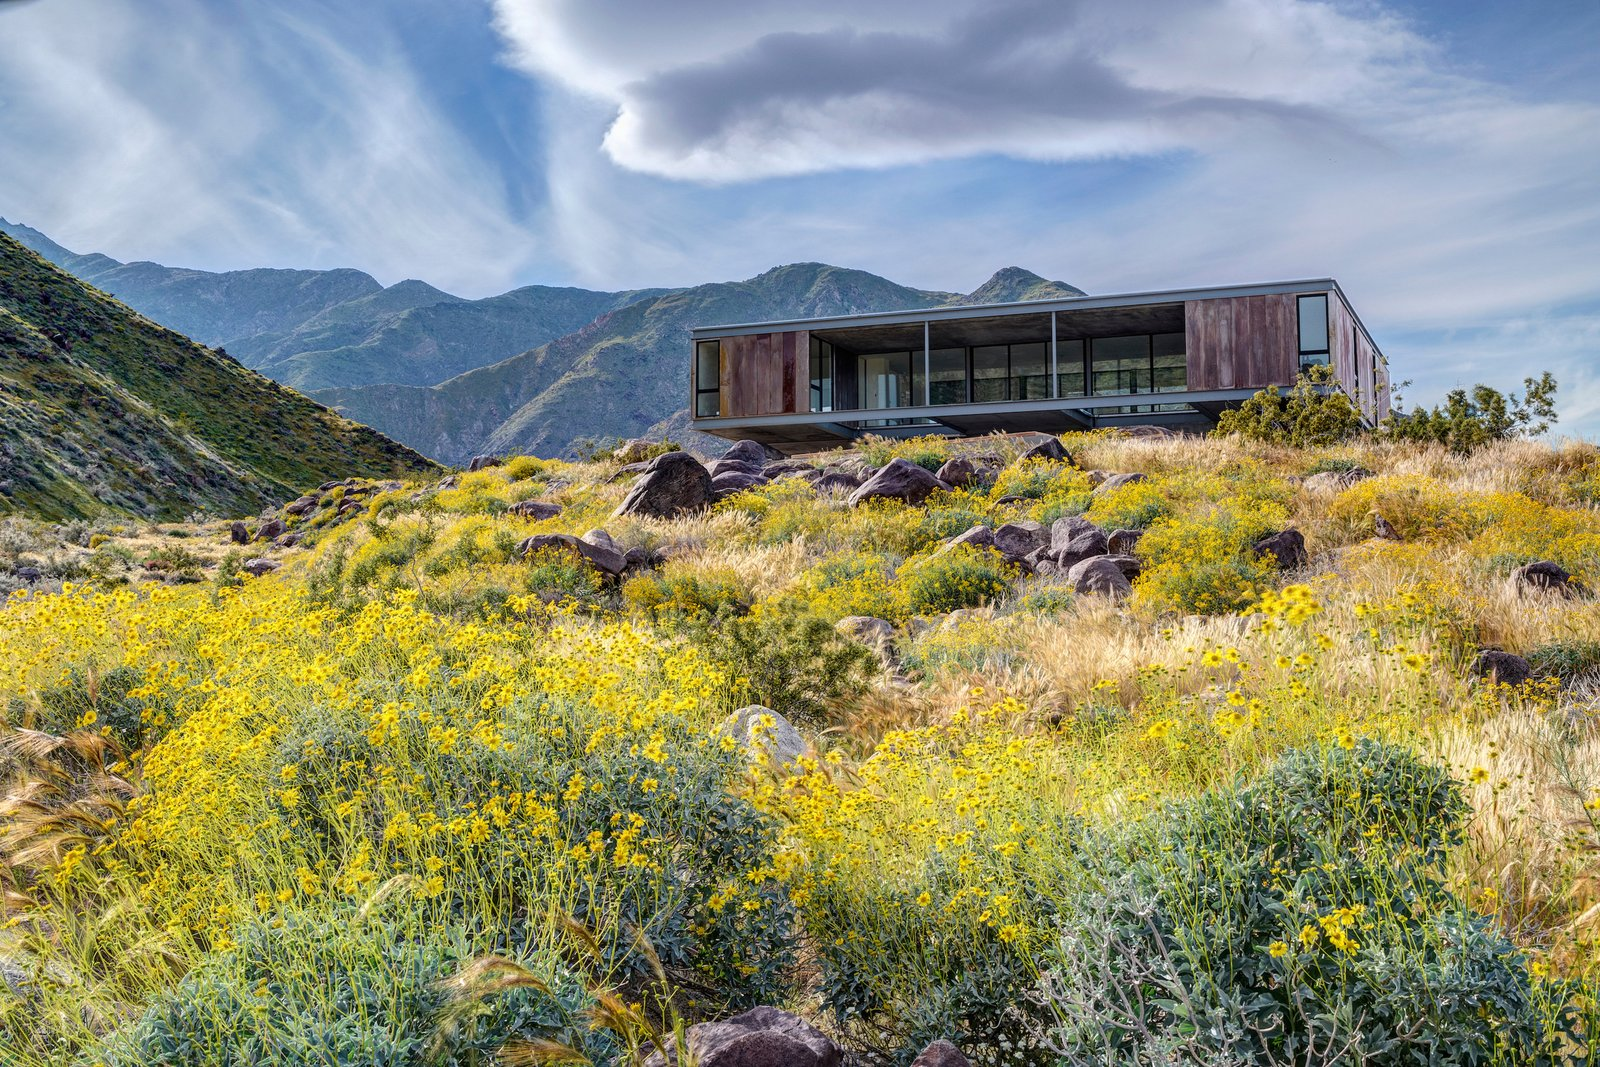 The Beadle House appears to float above the landscape, set upon a pedestal-like foundation. Desert Palisades Chino Canyon by Luxury Homes + Lifestyle